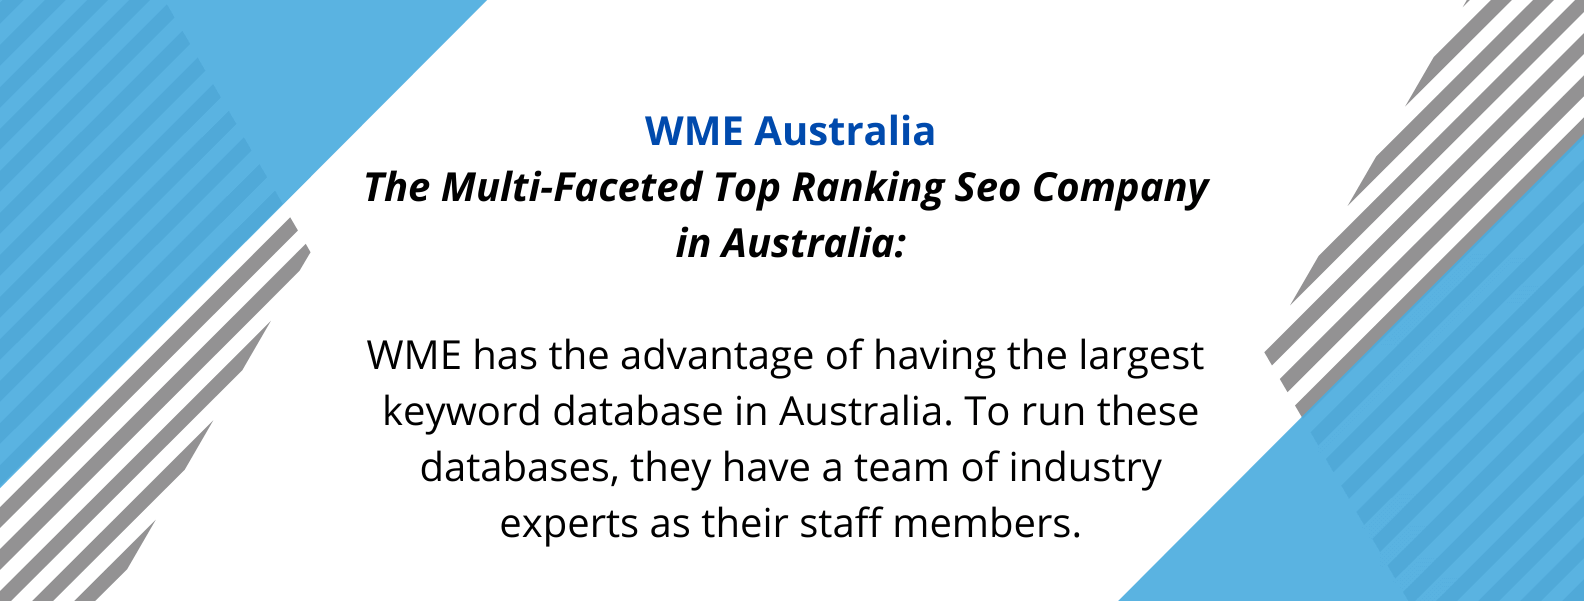 Unique Selling proposition of WME, one of the best SEO agencies of Australia.